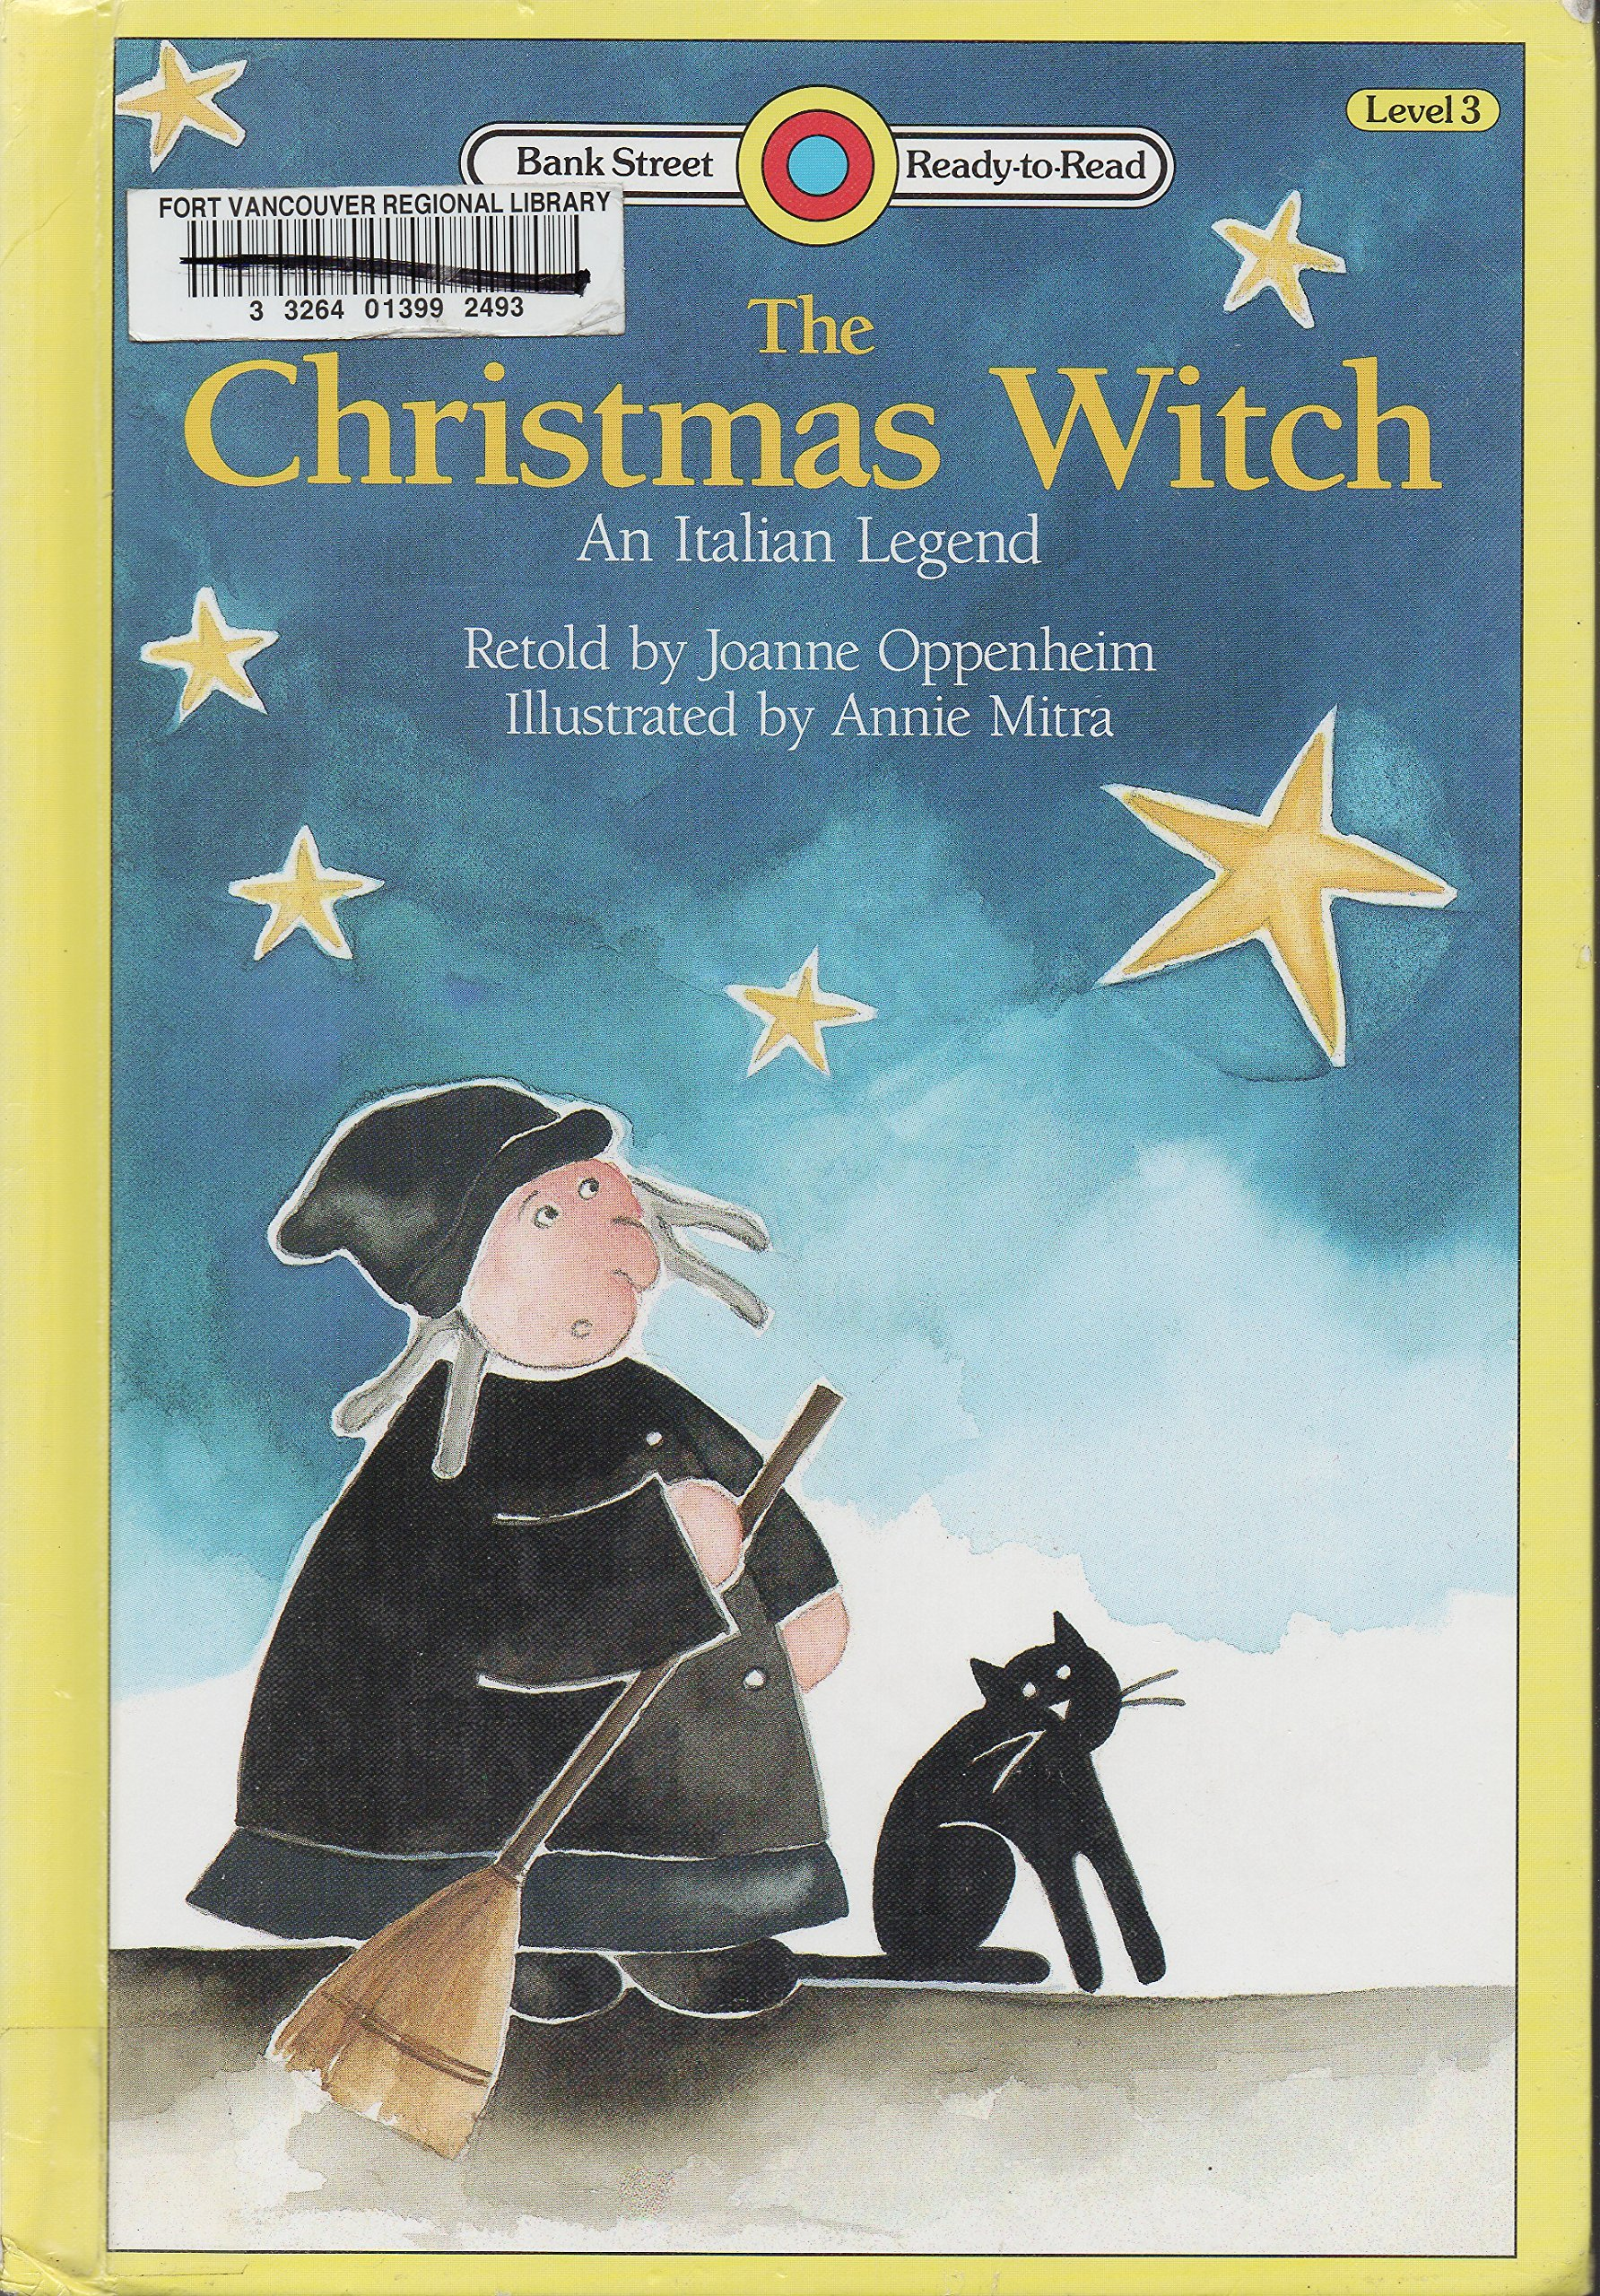 the christmas witch an italian legend bank street ready t0 read annie mitra joanne f oppenheim 9780836816976 amazoncom books - Italian Christmas Witch